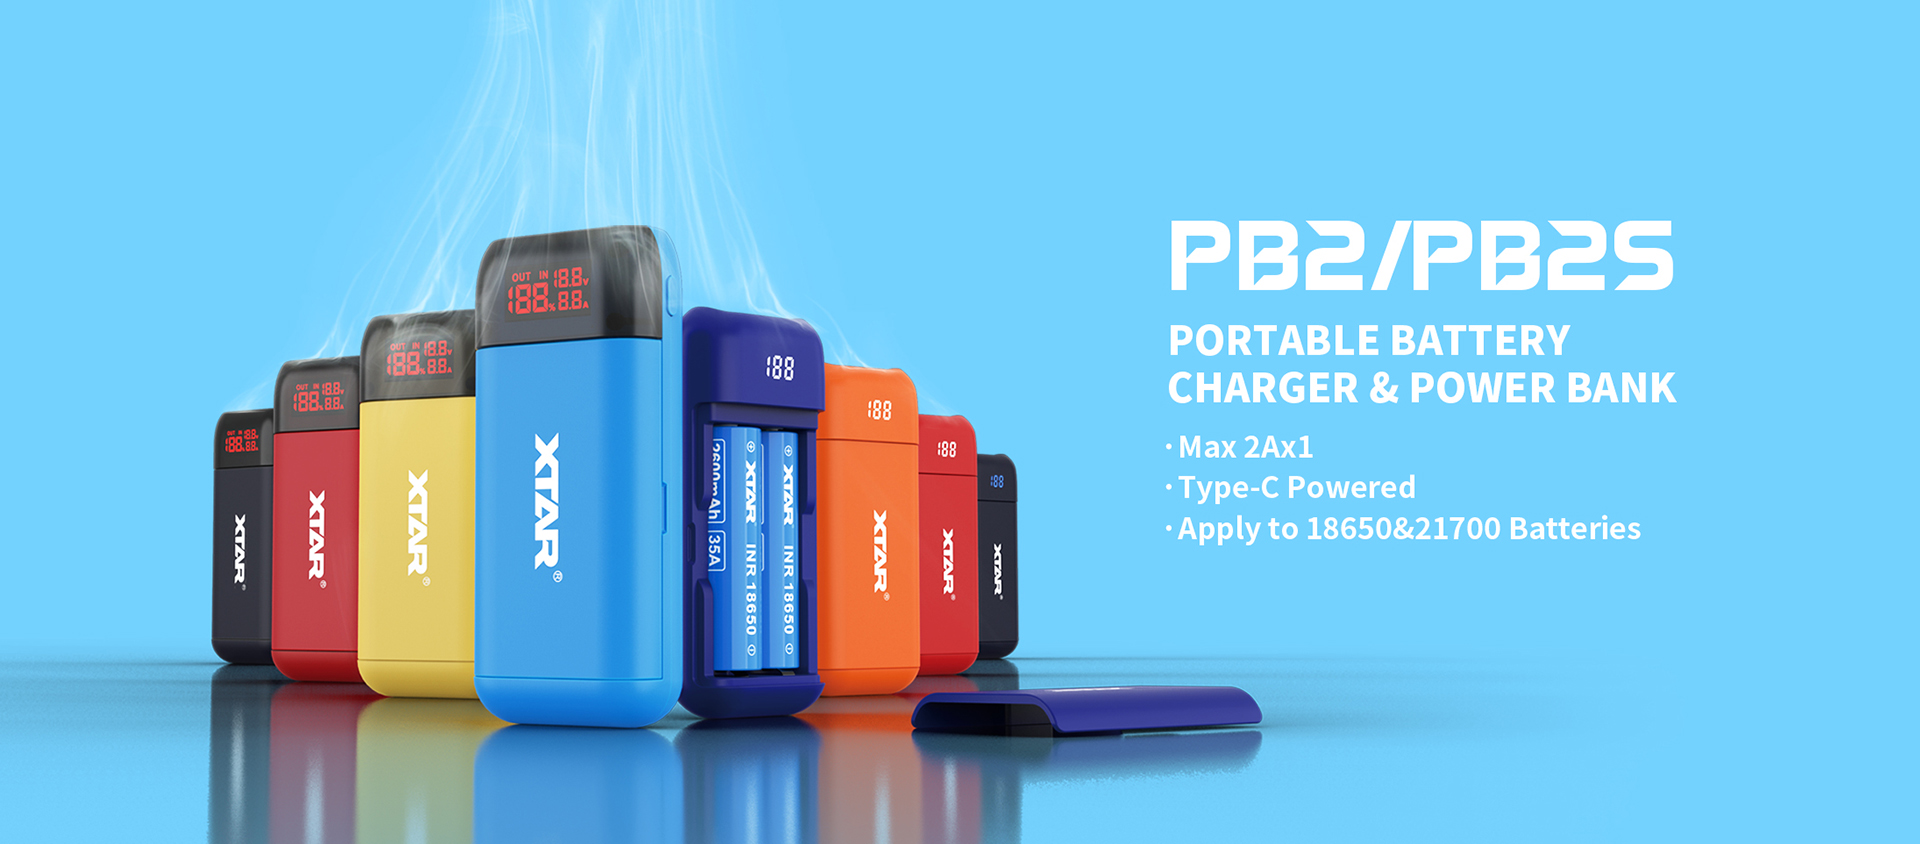 XTAR power bank charger new arrival PB2